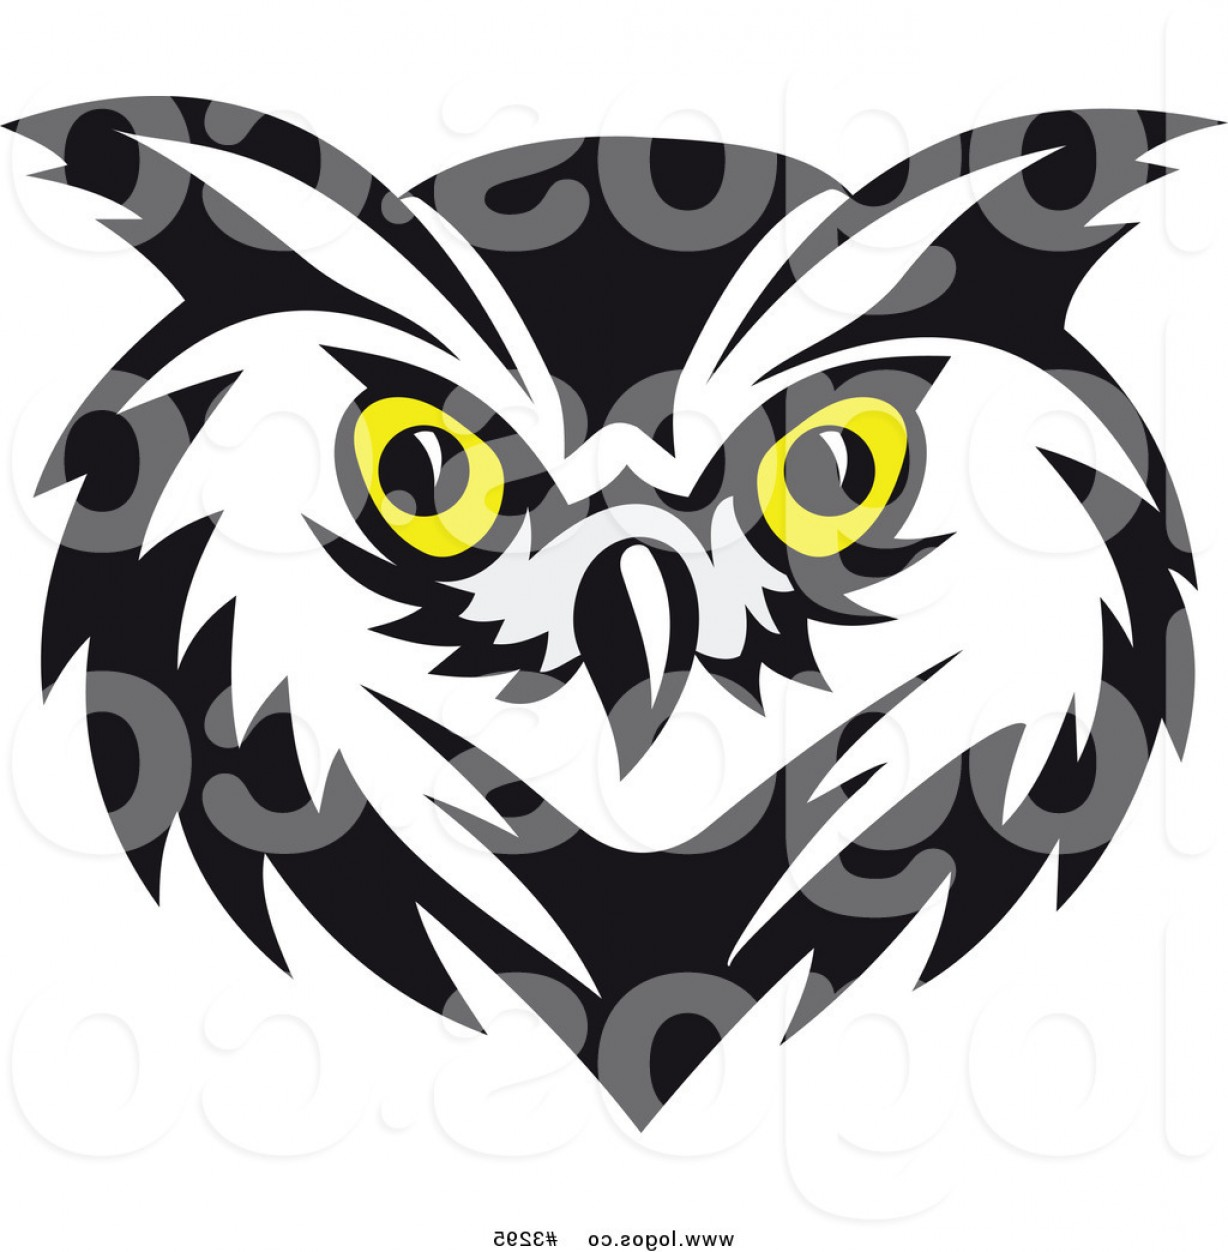 1228x1252 Royalty Free Vector Of A Yellow Eyed Owl Face Logo By Vector